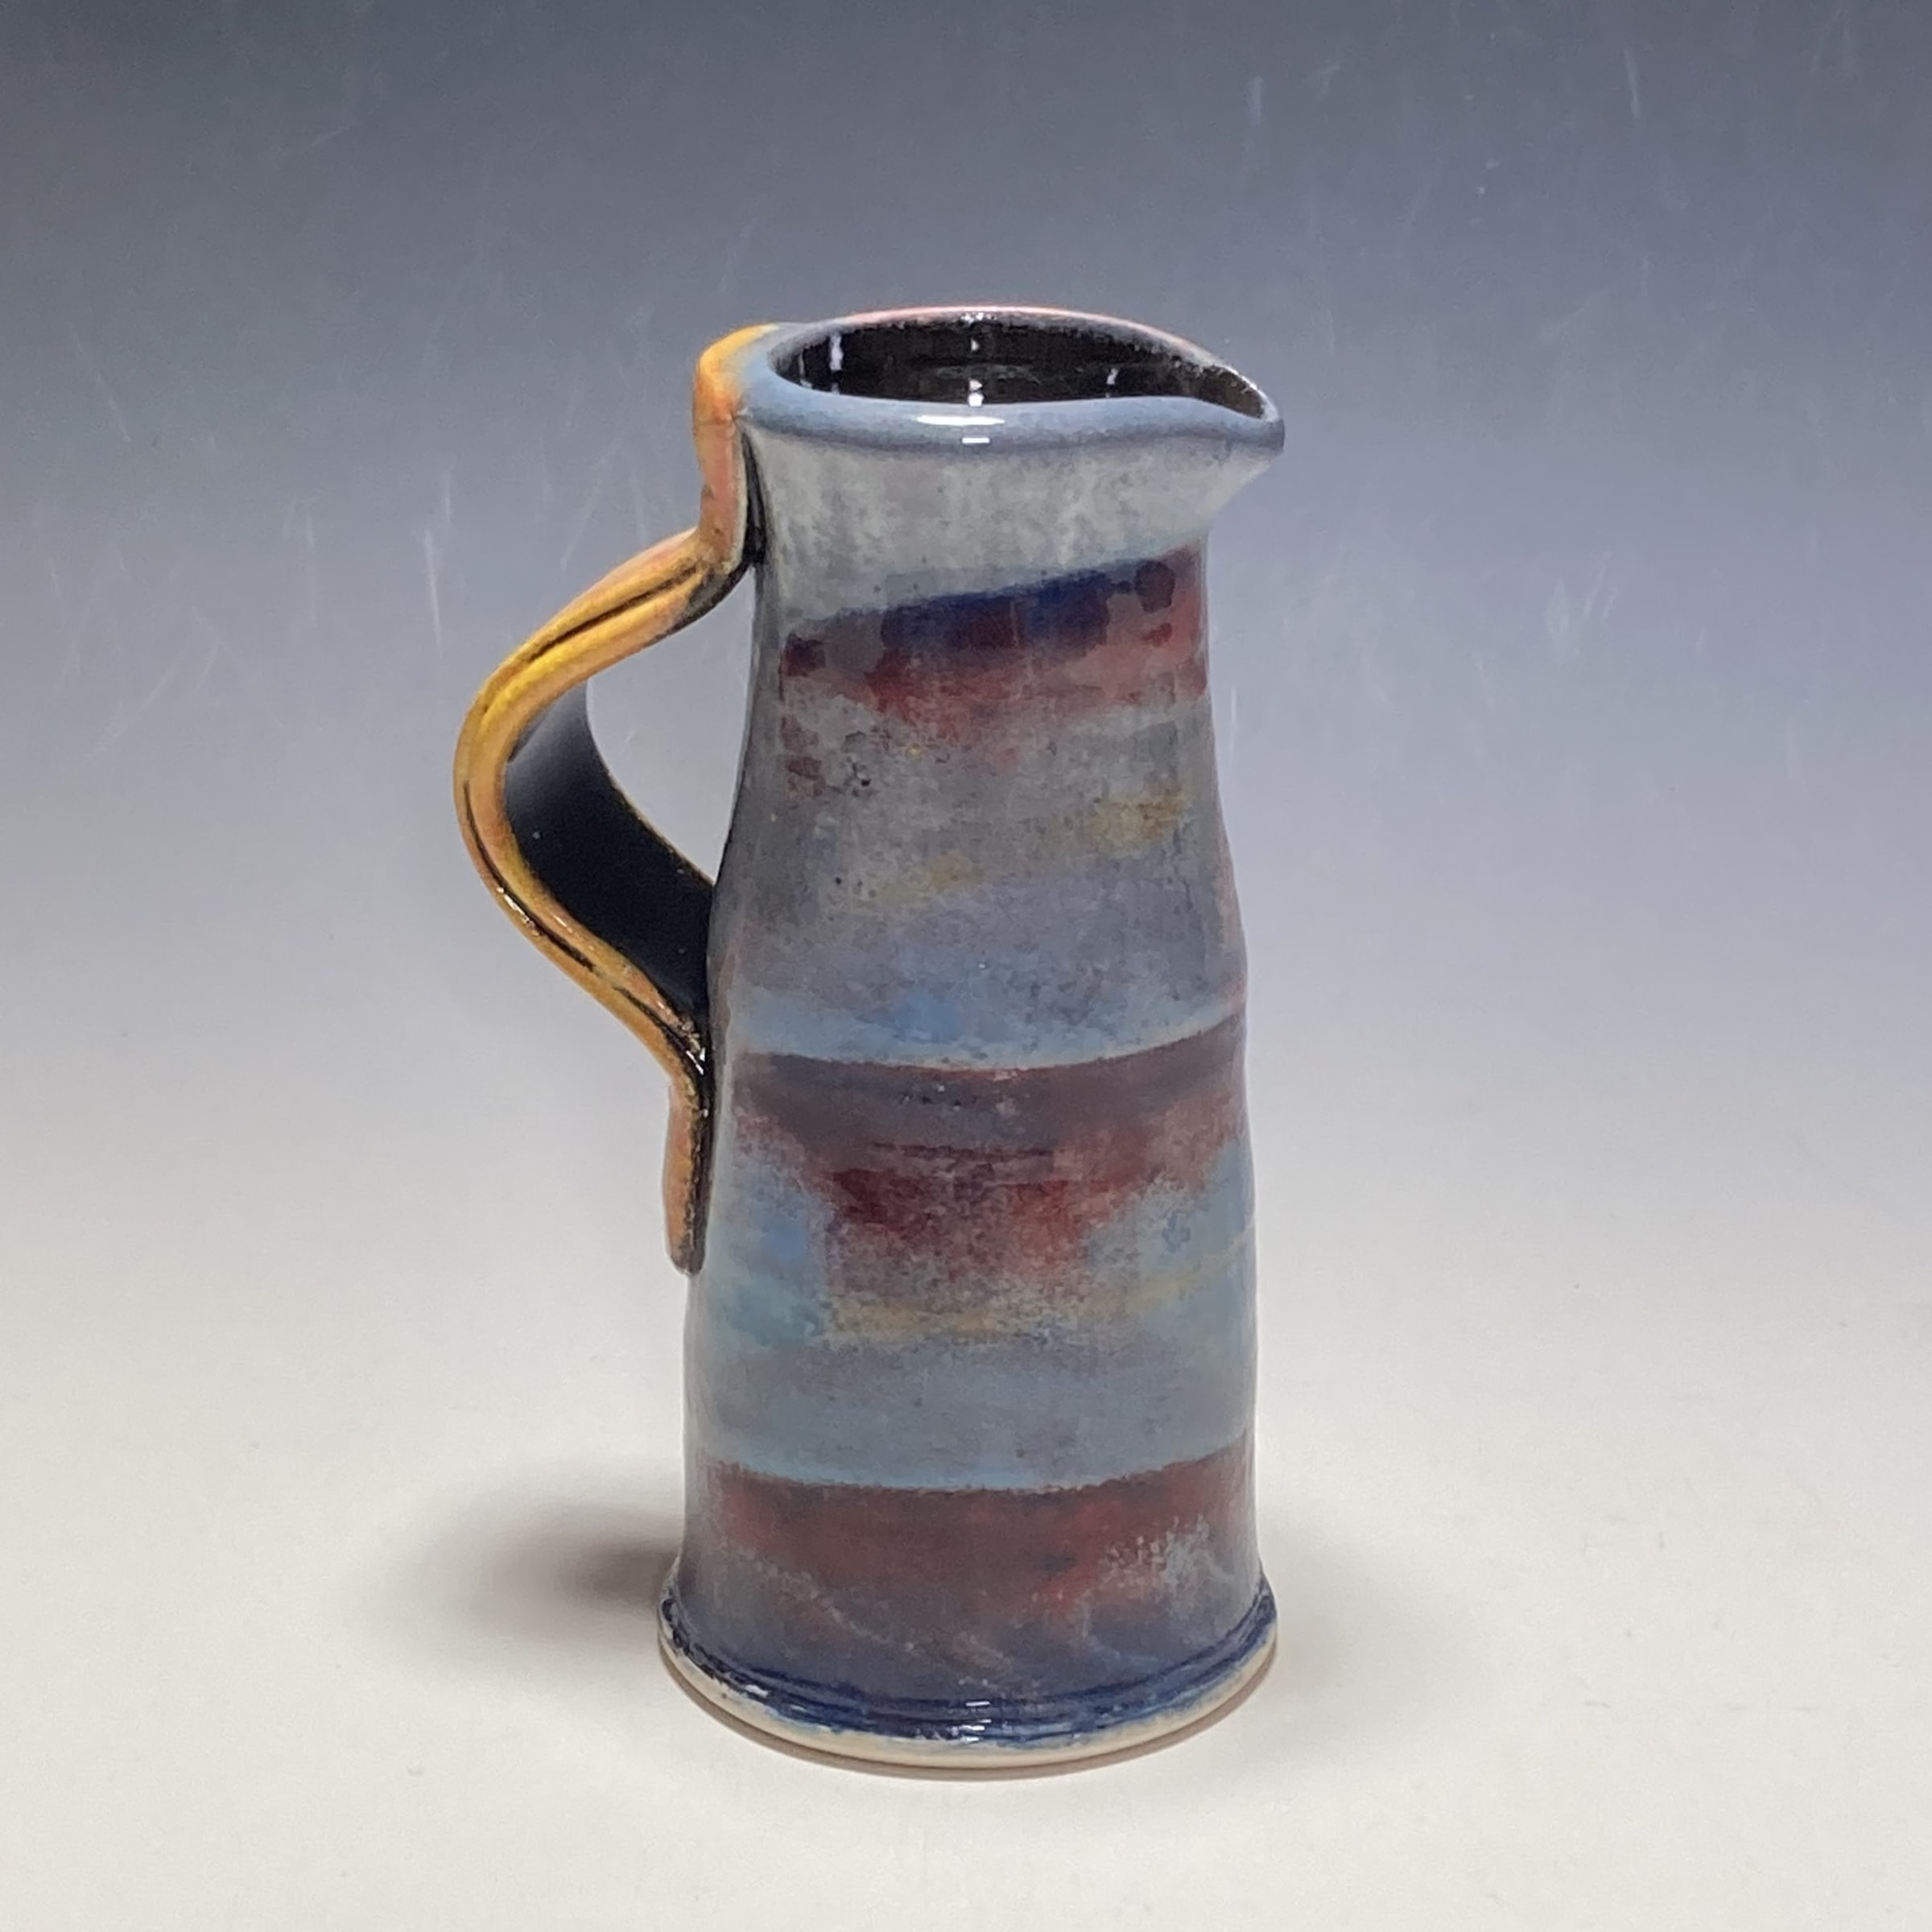 """<span class=""""link fancybox-details-link""""><a href=""""/artists/100-john-pollex/works/7851-john-pollex-medium-jug-2021/"""">View Detail Page</a></span><div class=""""artist""""><strong>John Pollex</strong></div> <div class=""""title""""><em>Medium Jug</em>, 2021</div> <div class=""""signed_and_dated"""">impressed with the artist's seal mark 'JP'</div> <div class=""""medium"""">white earthenware decorated with coloured slips</div> <div class=""""dimensions"""">height. 16.5 cm x diameter. 6 cm</div><div class=""""price"""">£99.00</div><div class=""""copyright_line"""">Own Art: £9.90 x 10 Months, 0% APR</div>"""